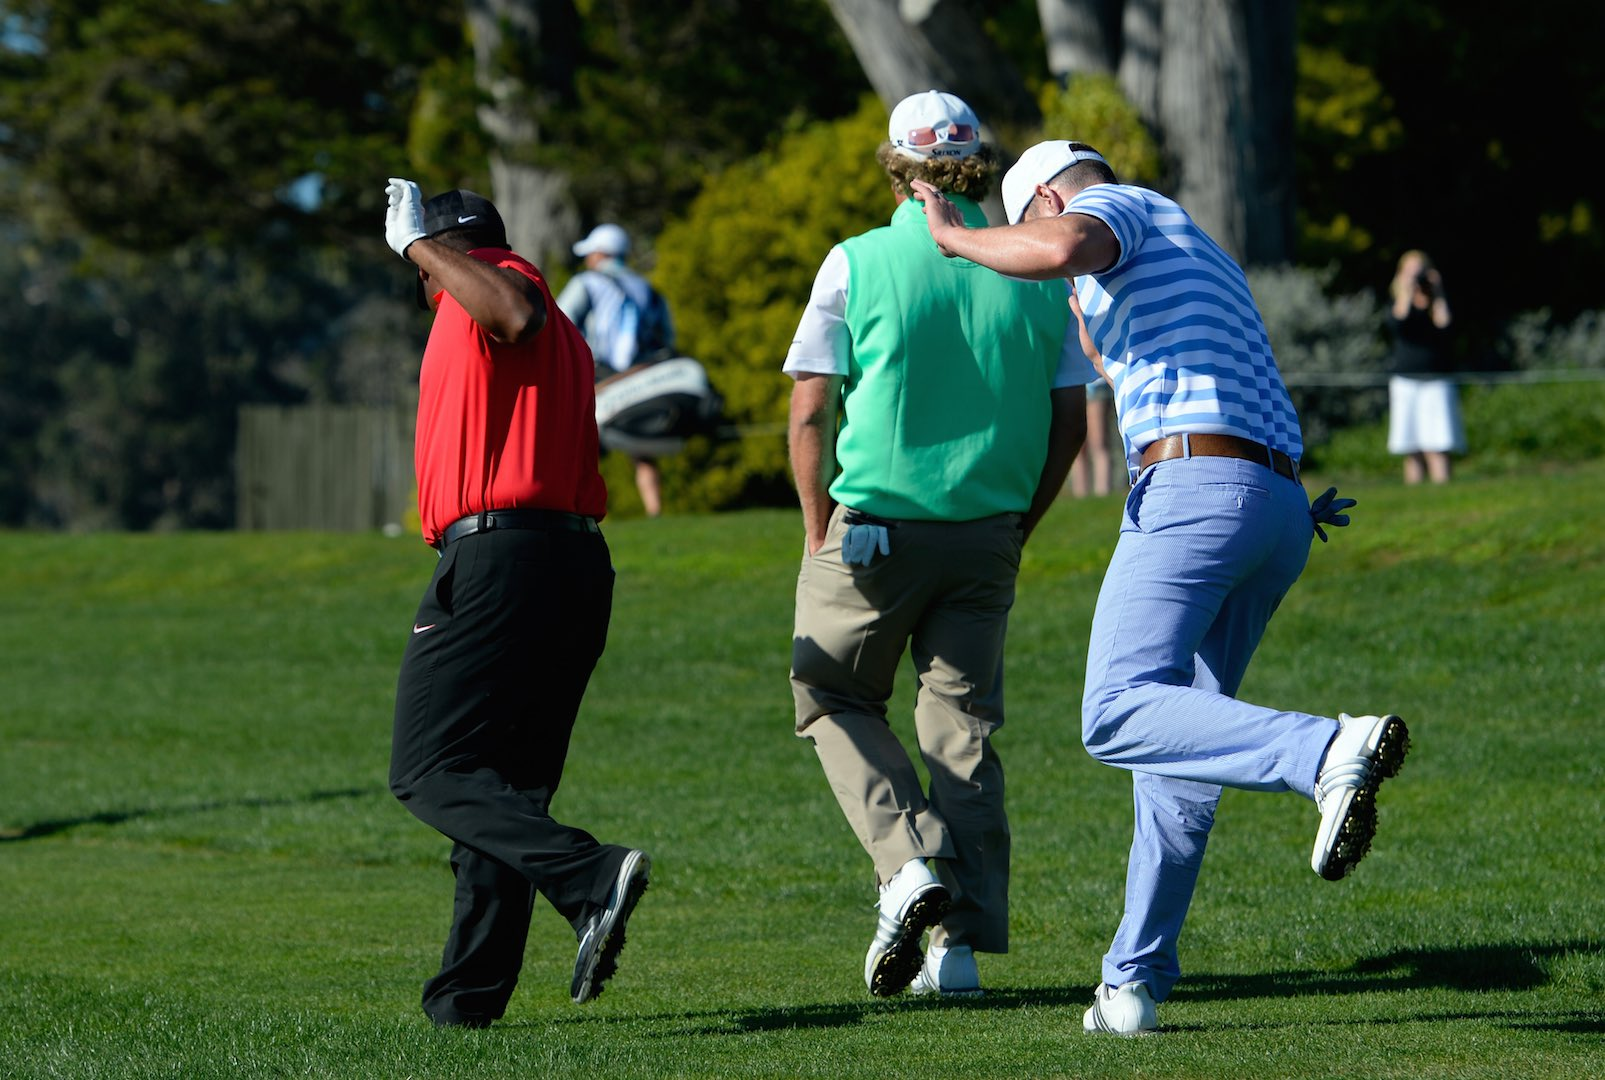 Pebble Beach AT&T Round 3 Highlights